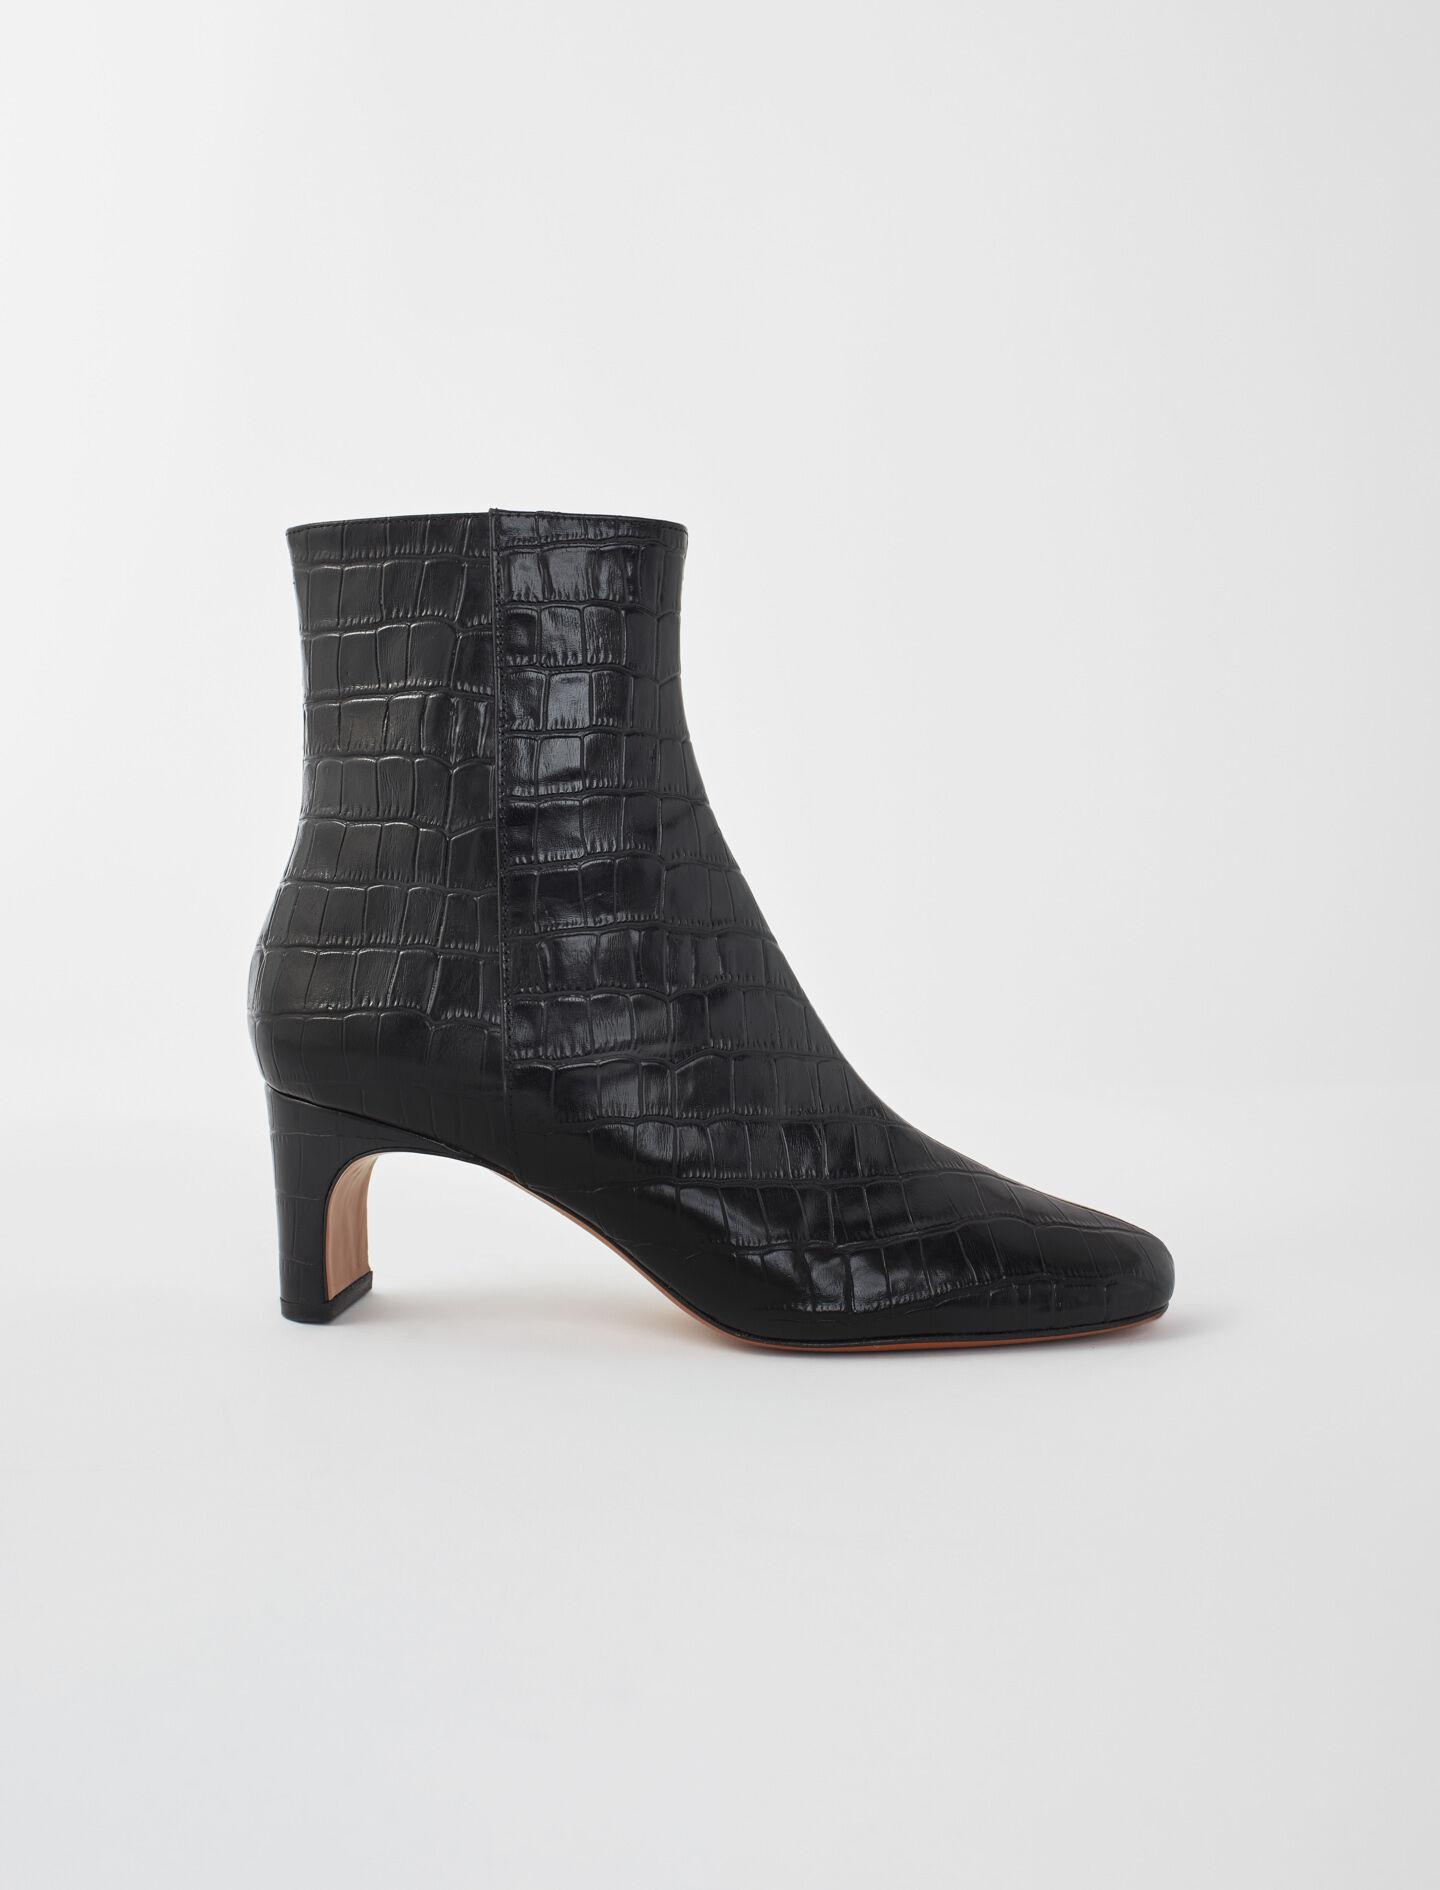 CROC-EFFECT EMBOSSED LEATHER BOOTS